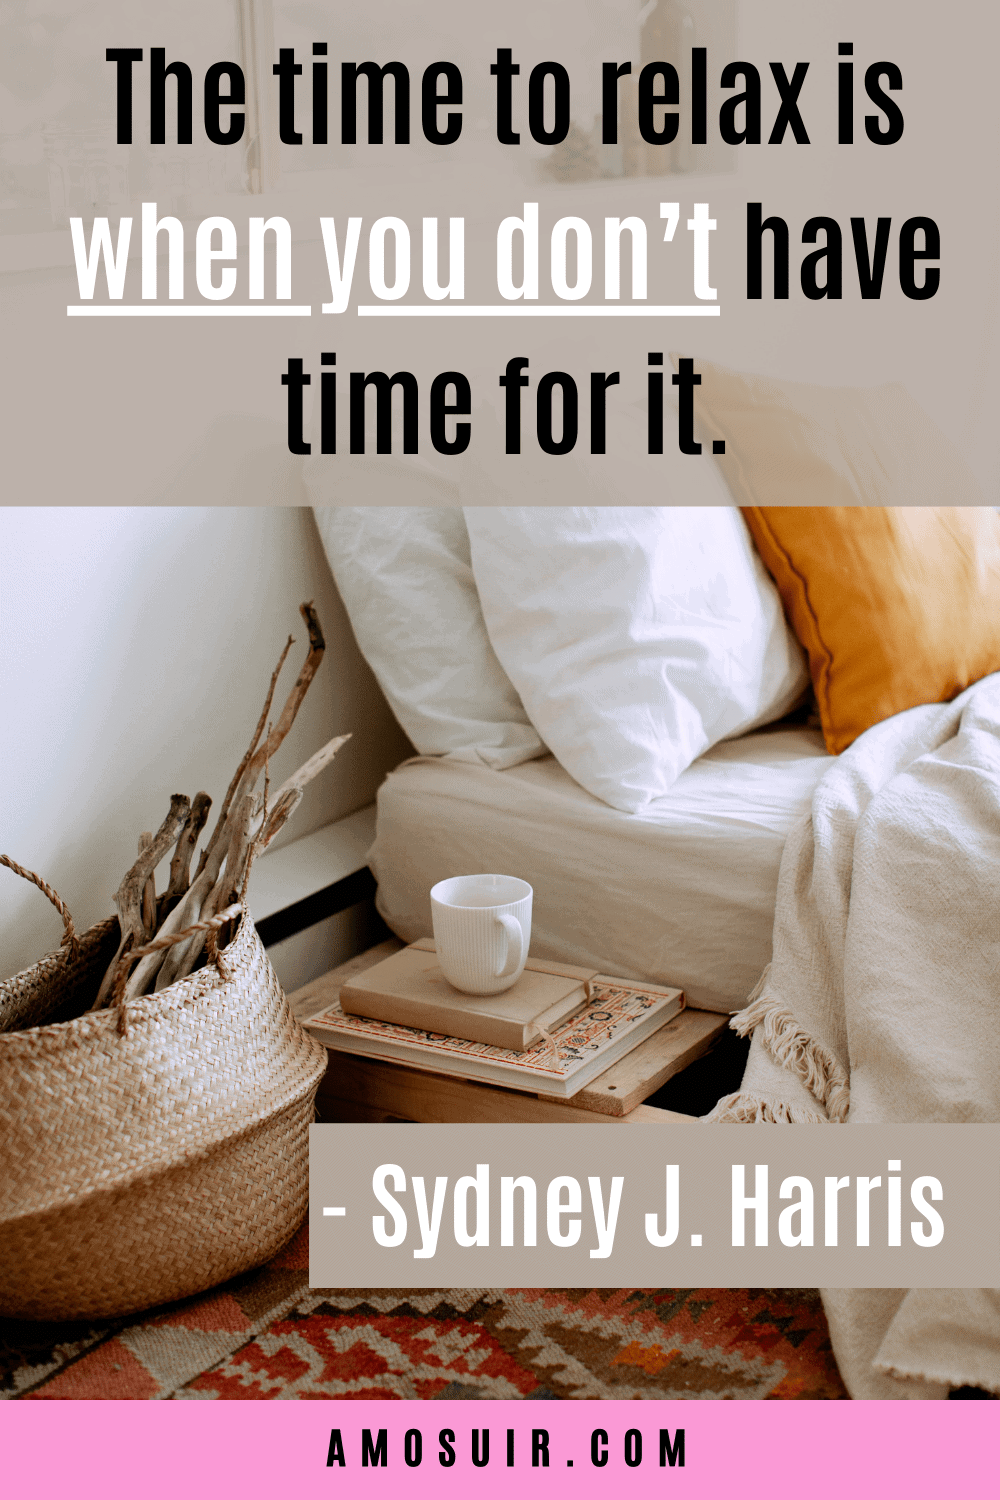 motivational quotes for anxiety  - the time to relax is when you don't have the time for it